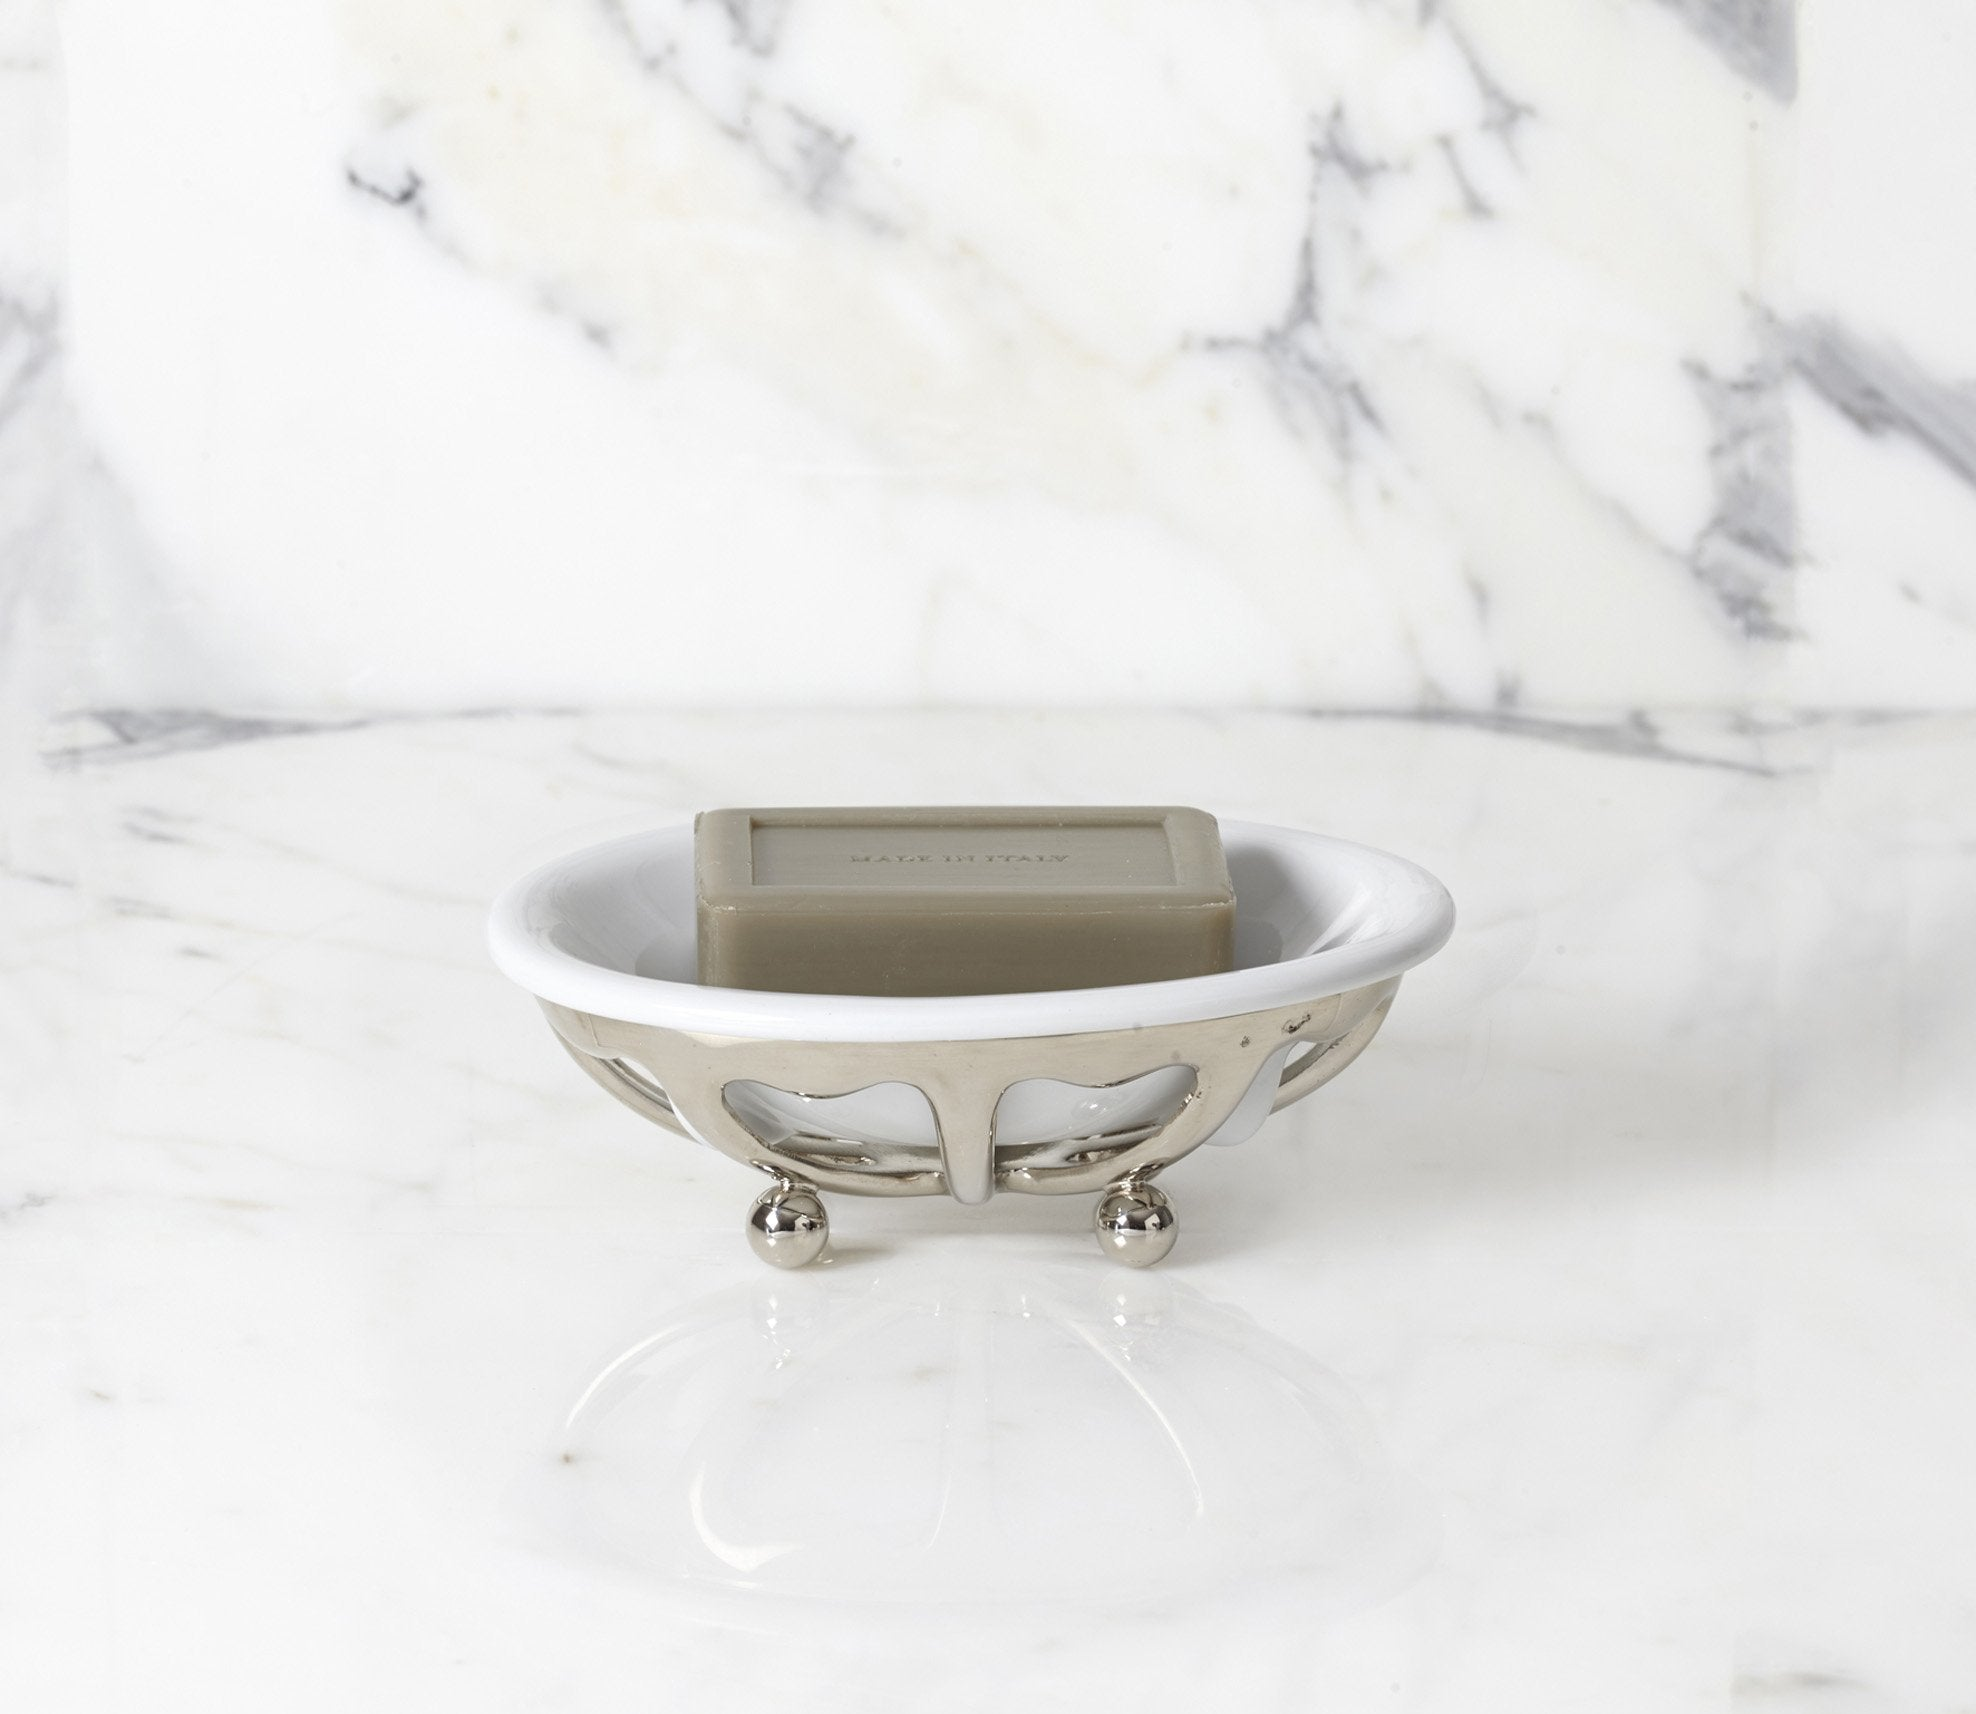 Classic Soap Dish with White Porcelain Product Image 1